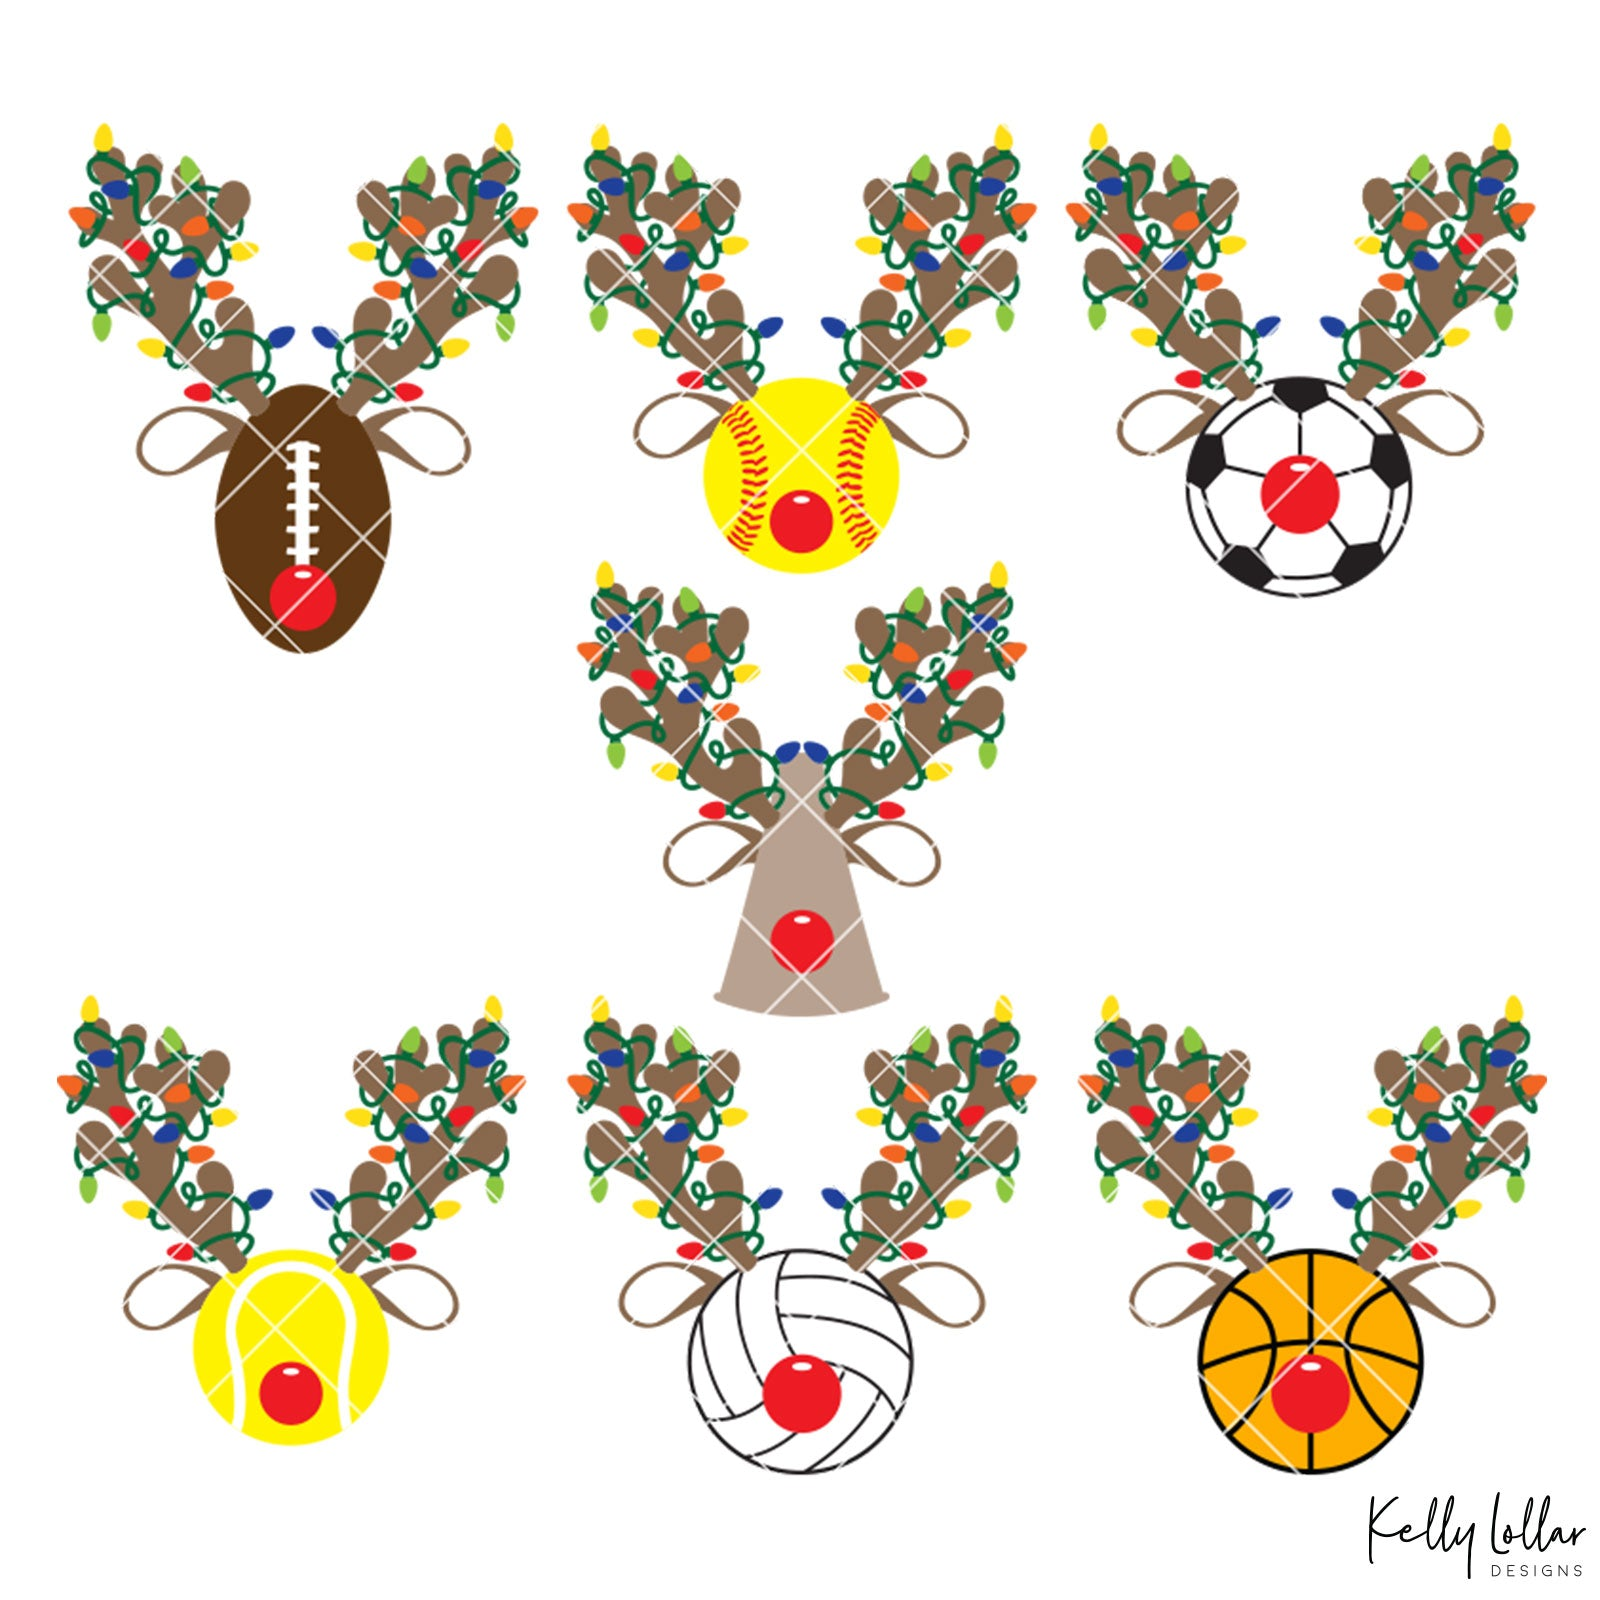 Reindeer Sports Bundle | Christmas Light Wrapped Reindeer Antlers and Ears for Baseball, Softball, Basketball, Cheer, Football, Soccer, Tennis and Volleyball Holiday Shirts | SVG DXF PNG Cut Files